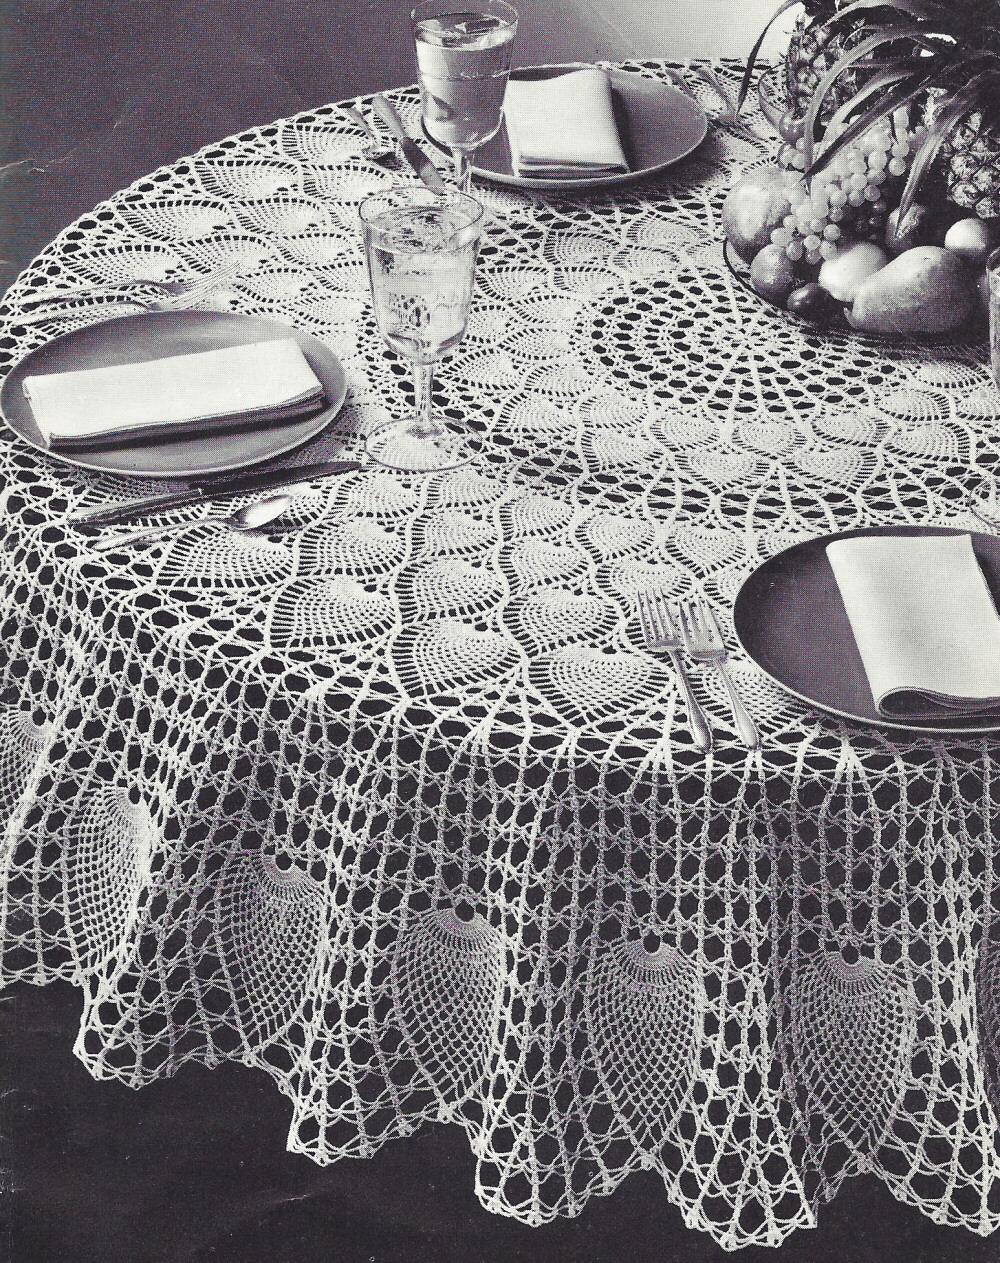 ... Crochet Pattern to make Pineapple Petals Design Round Tablecloth 72